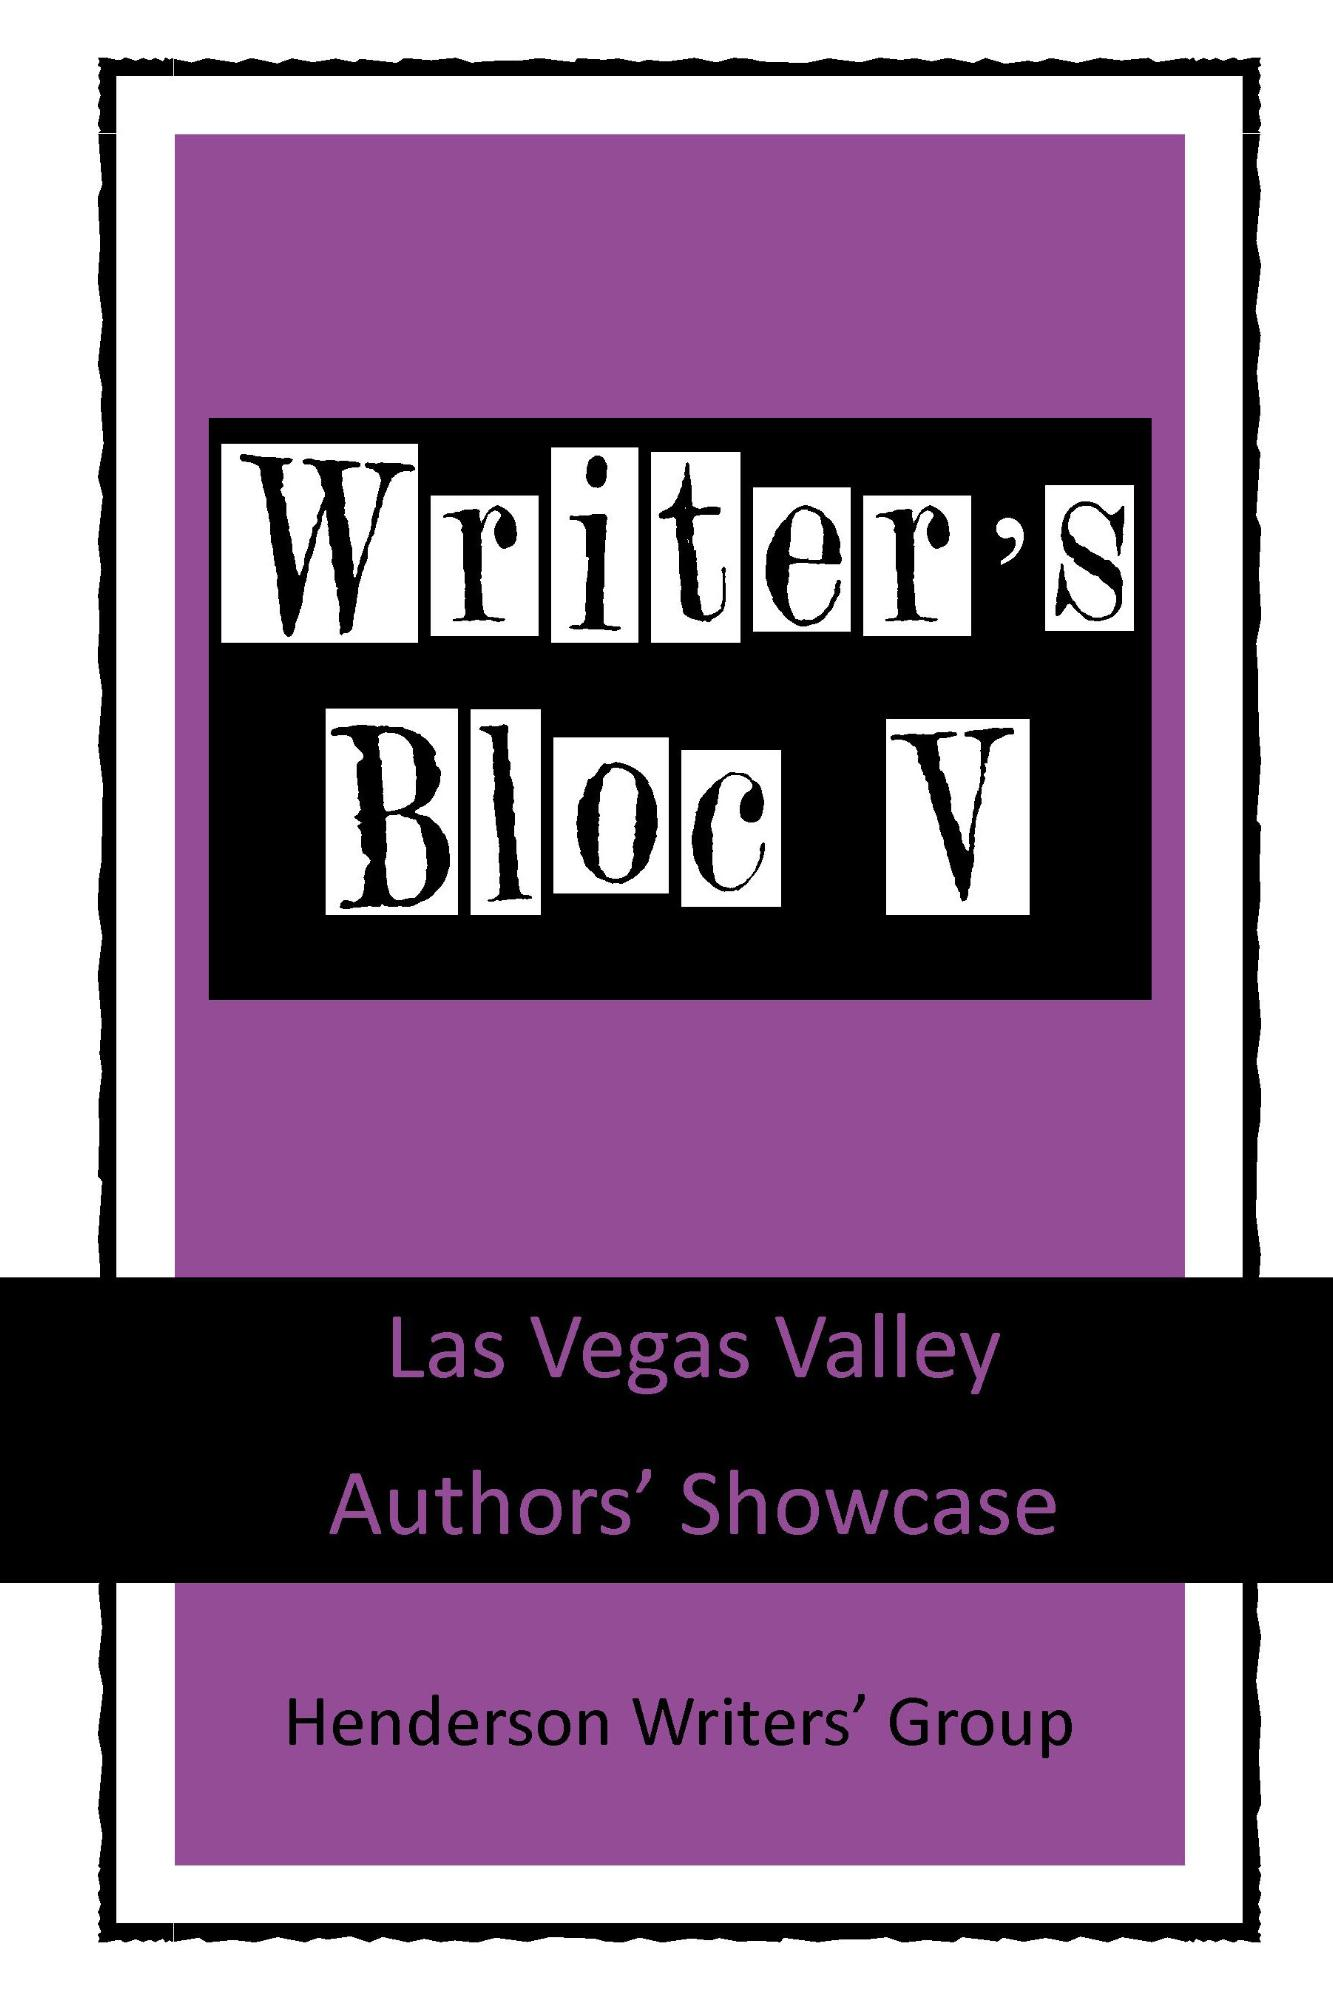 Writer's_Bloc_V_Cover_for_Kindle